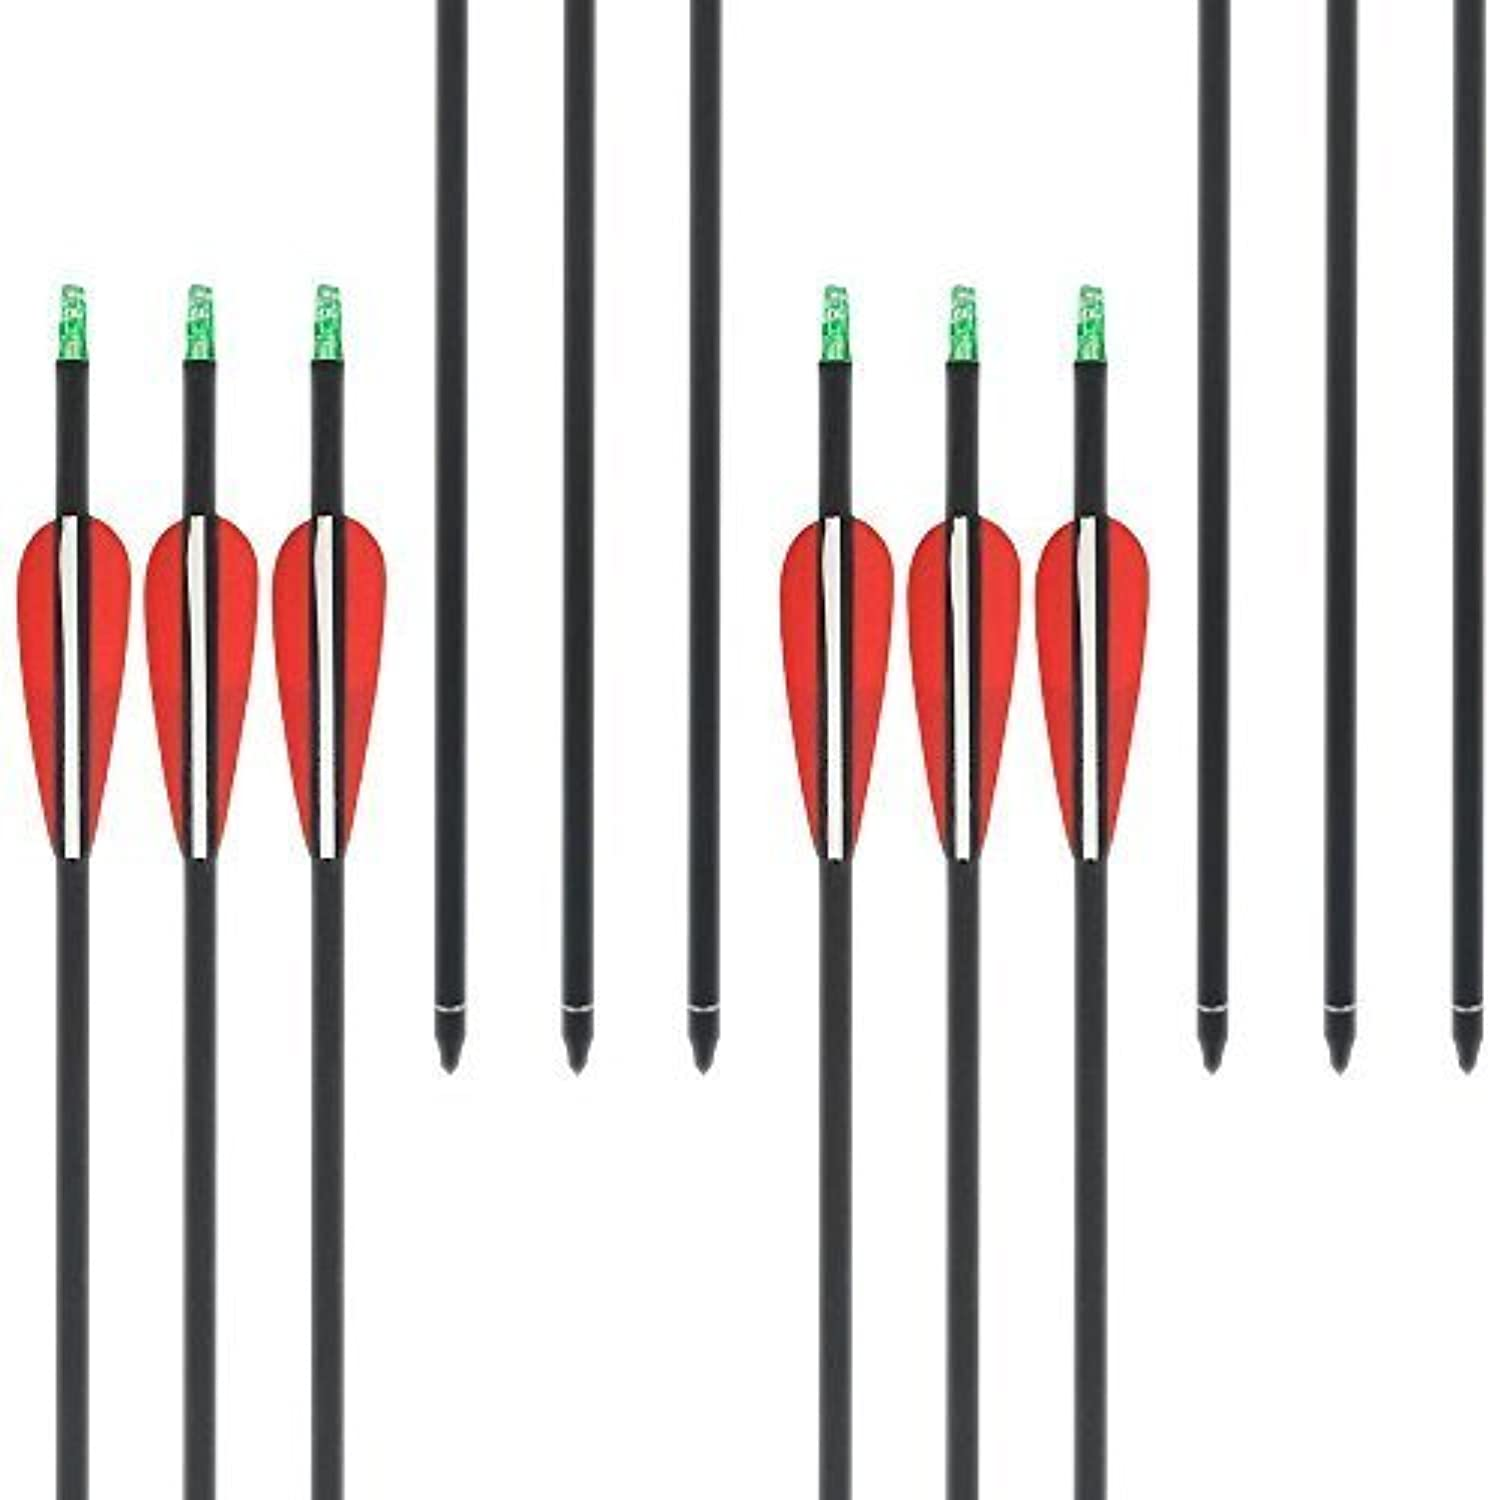 HBG 31Inch Carbon Arrows Shaft Spine 600 Archery Hunting Shooting Target Arrows For Recurve Compound Bow (12pack)